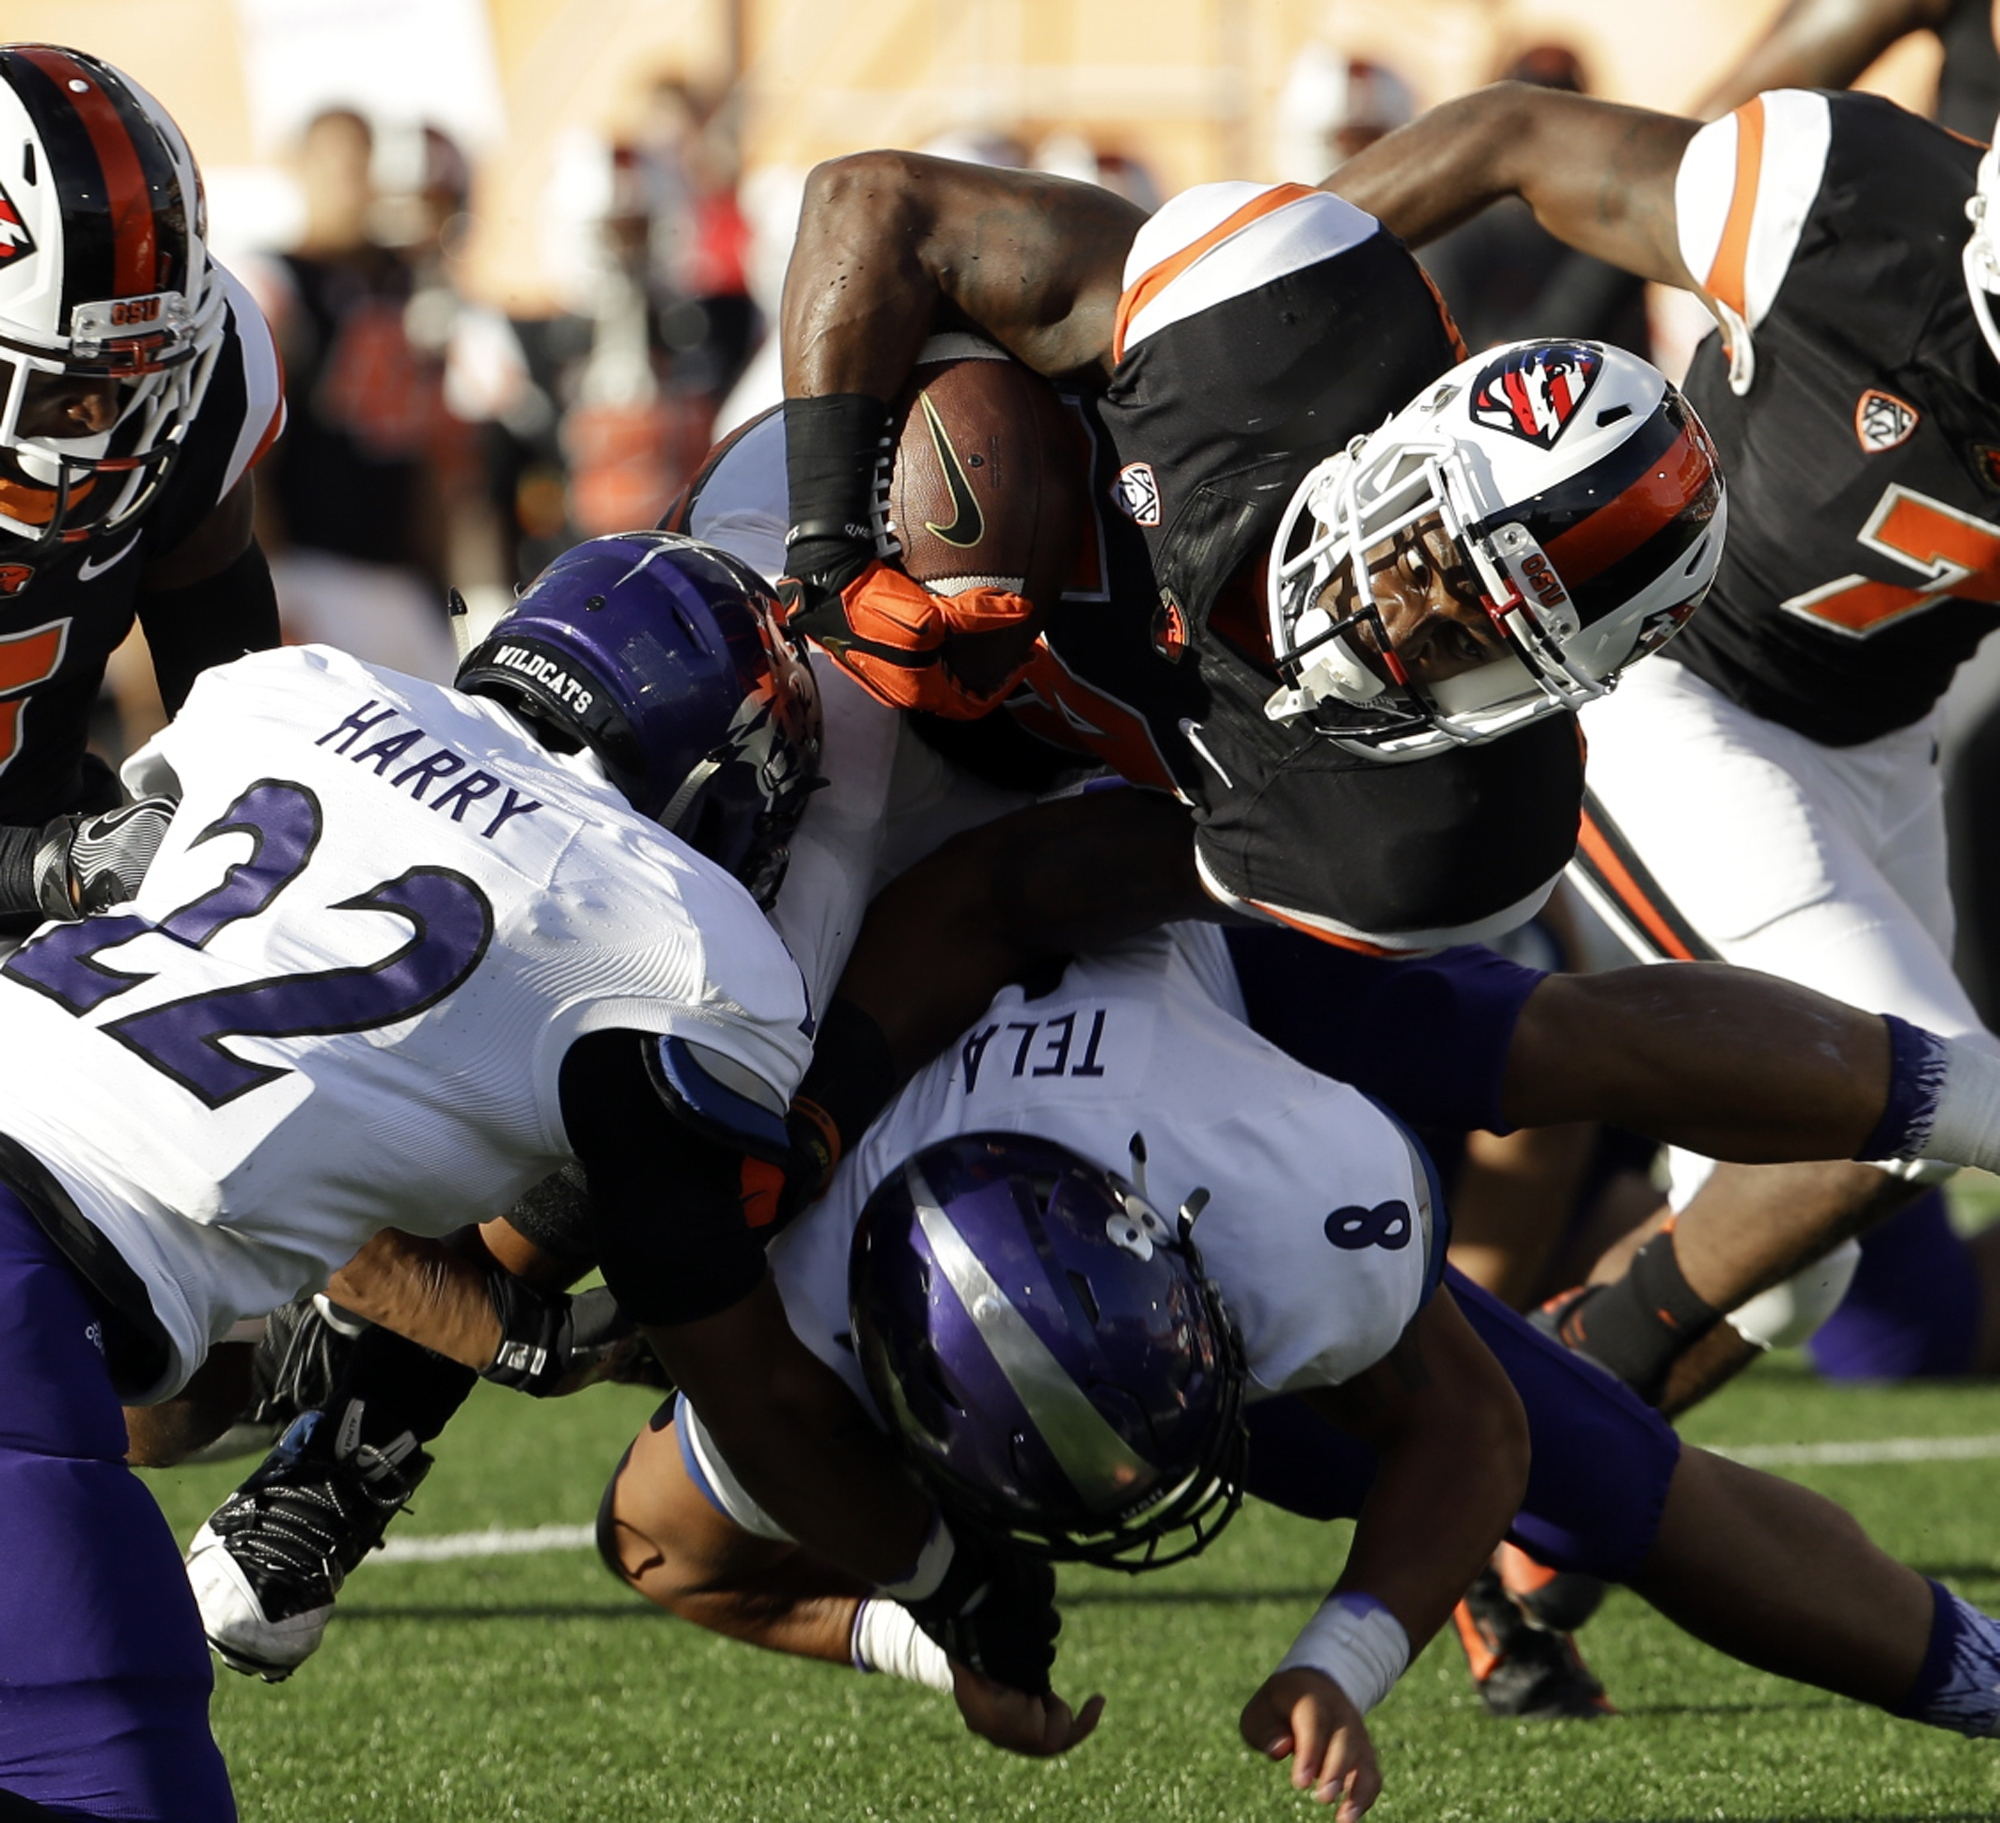 Oregon State running back Storm Woods, right, carries against Weber State corner back Xequille Harry (22) and Emmett Tela (8) during the first half of an NCAA college football game Friday, Sept. 4, 2015, in Corvallis, Ore. (AP Photo/Don Ryan)